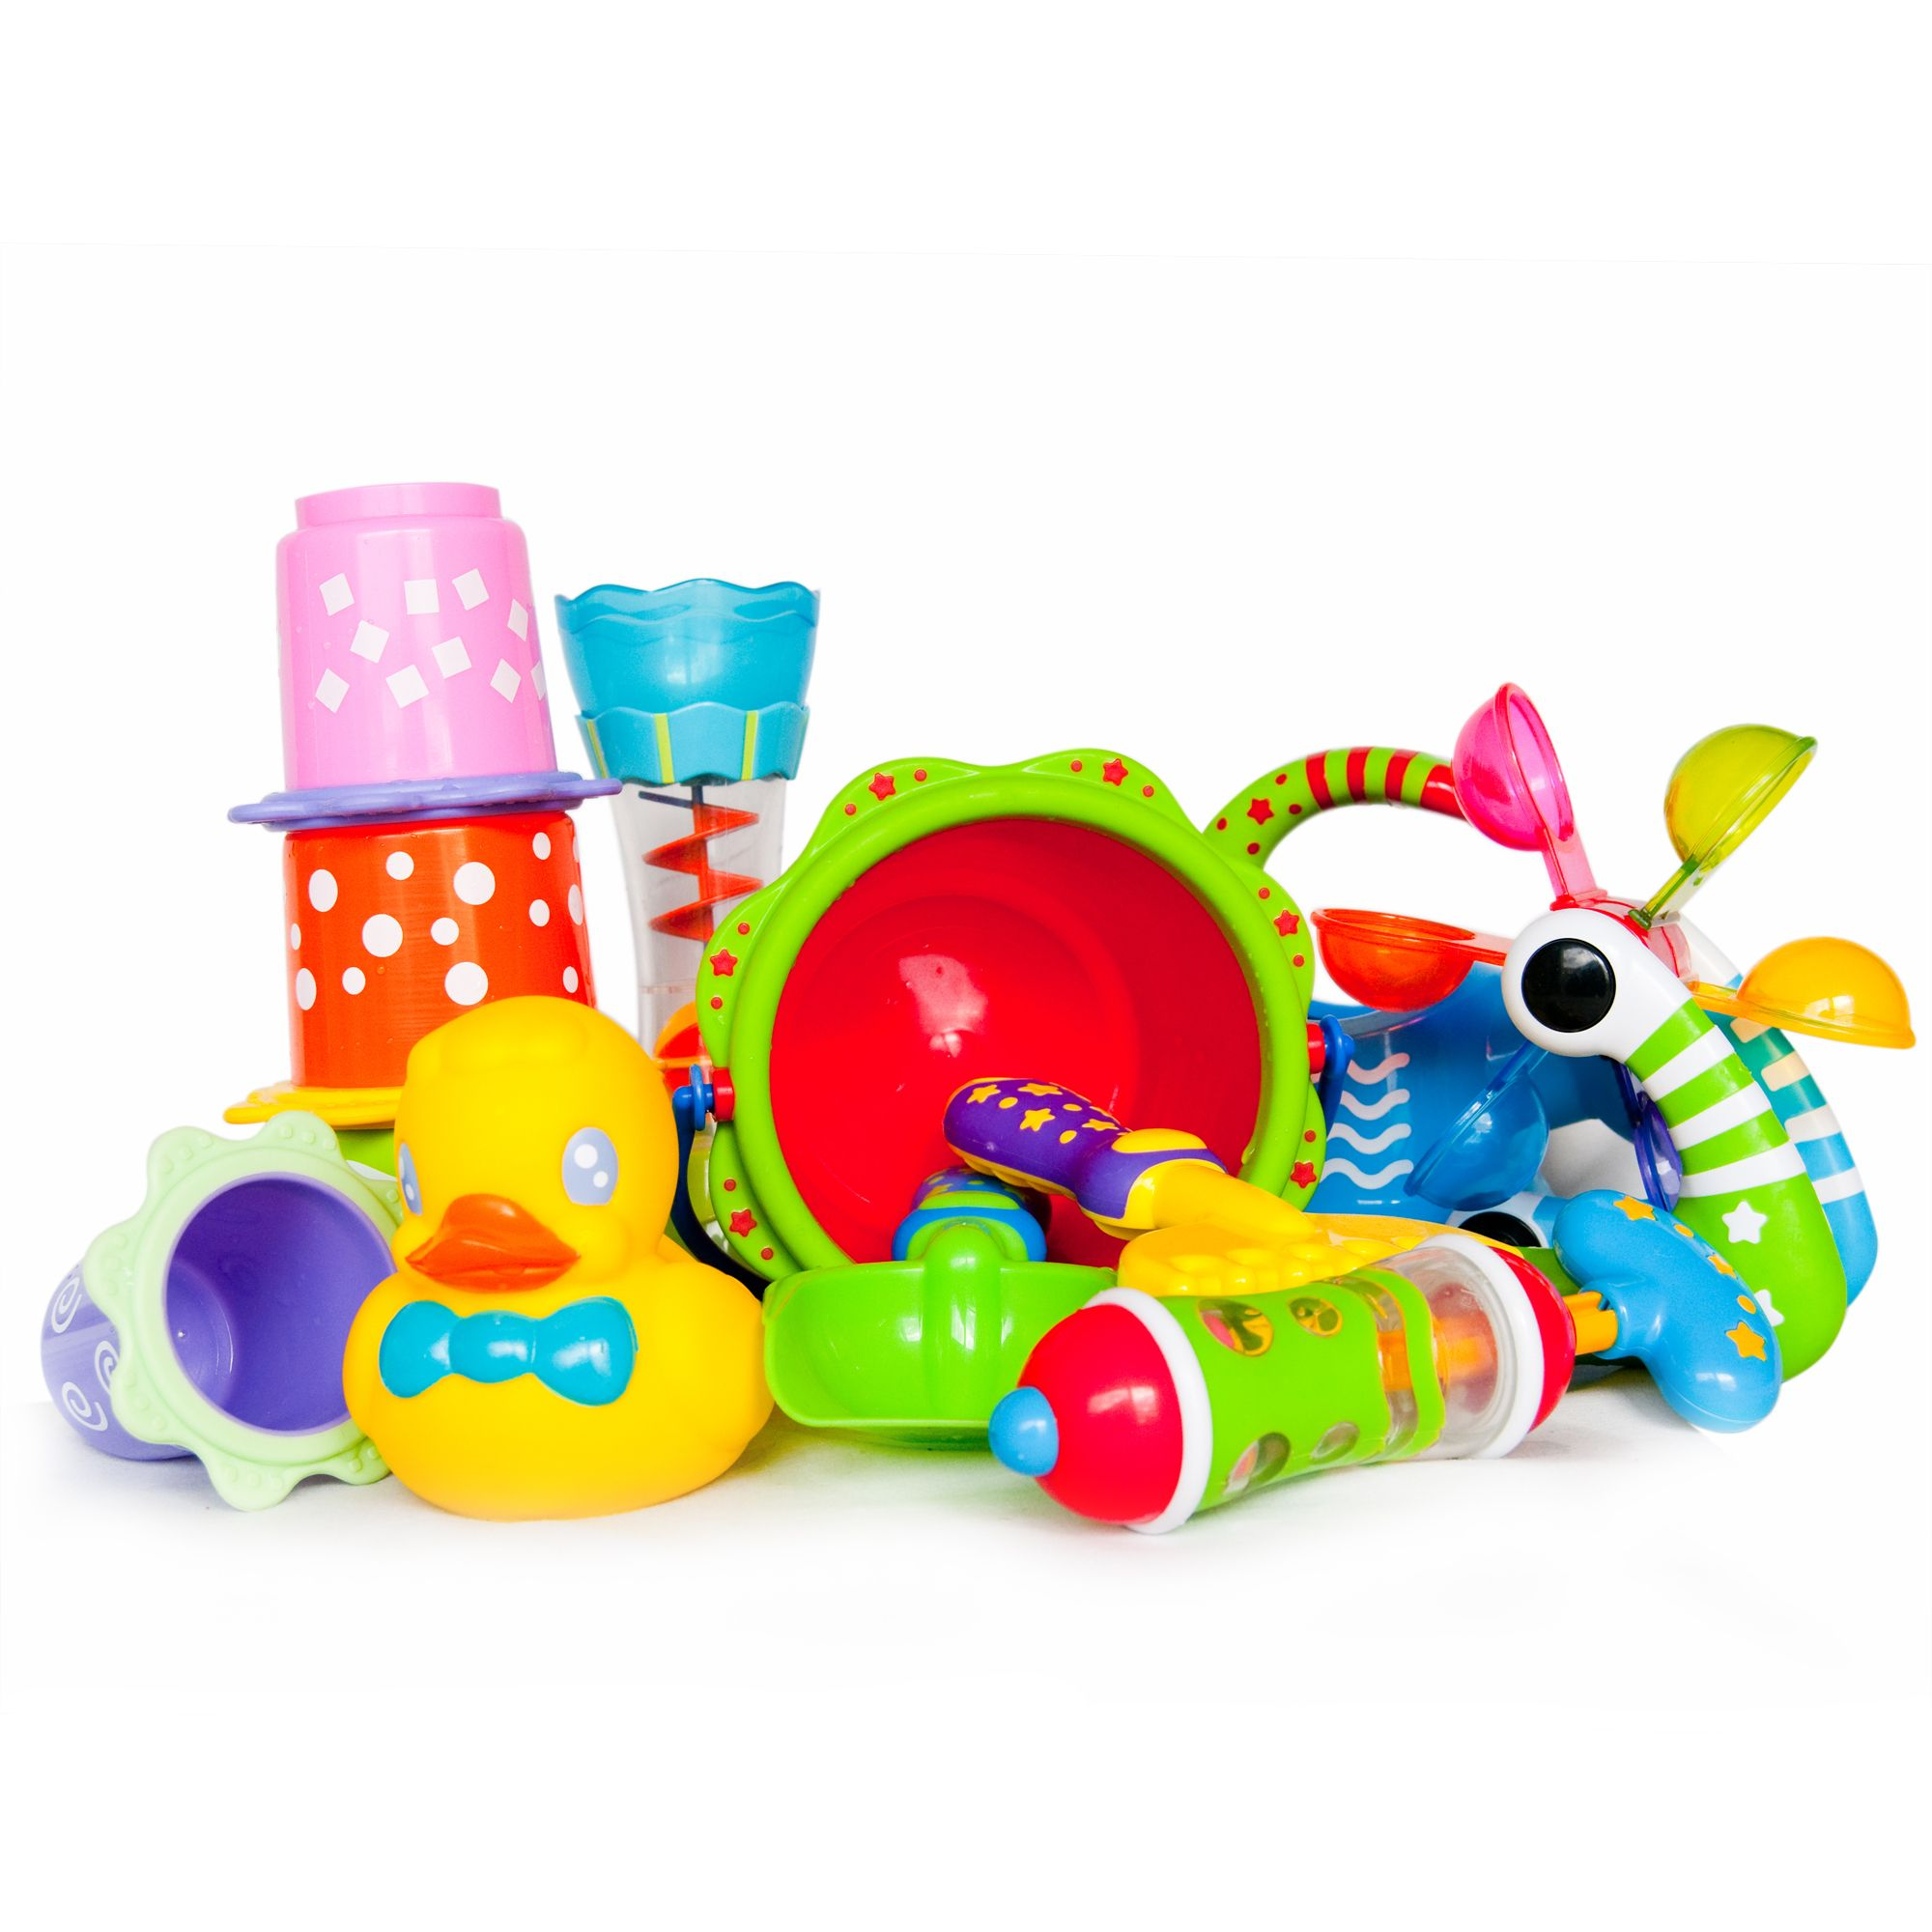 Top Collection of Toys Grab them Now